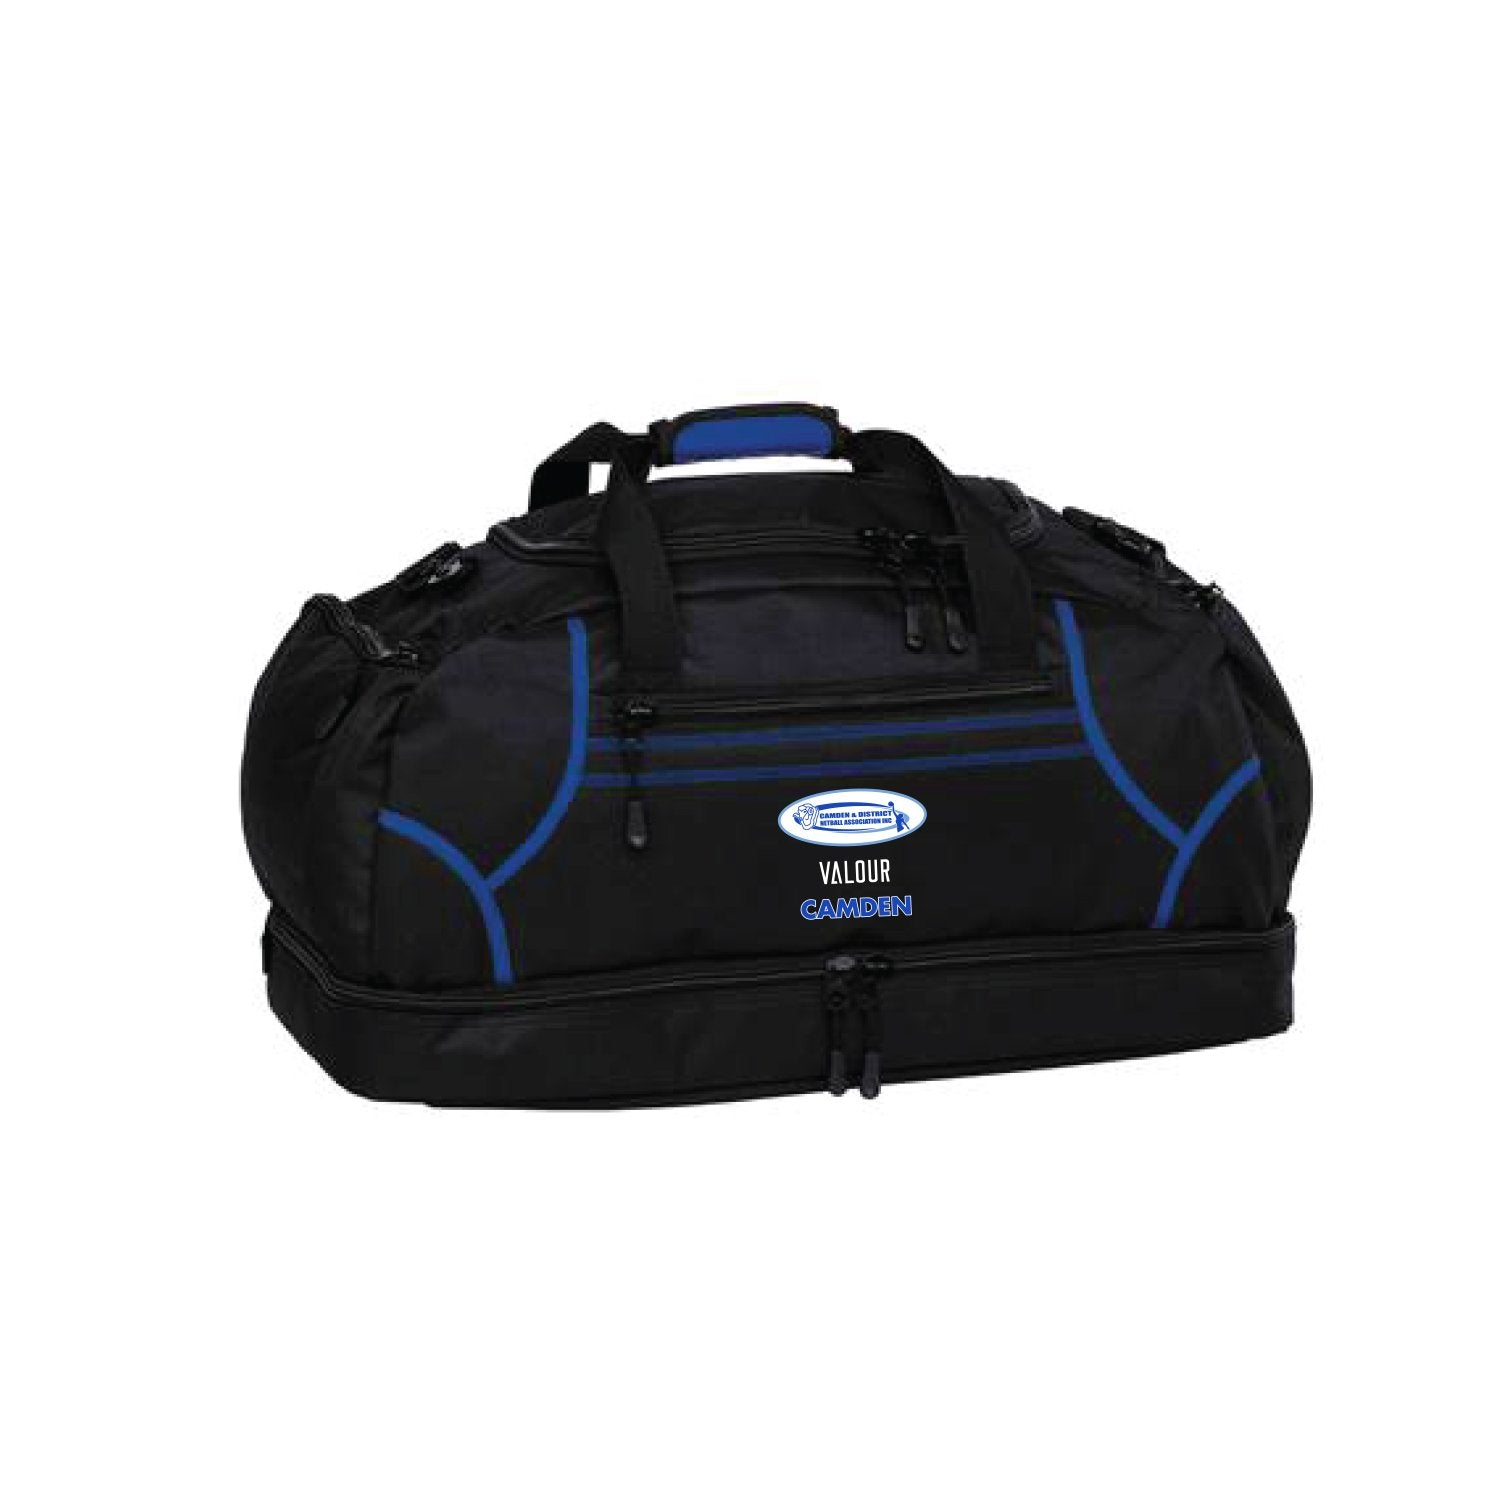 CDNA Player Sports Bag